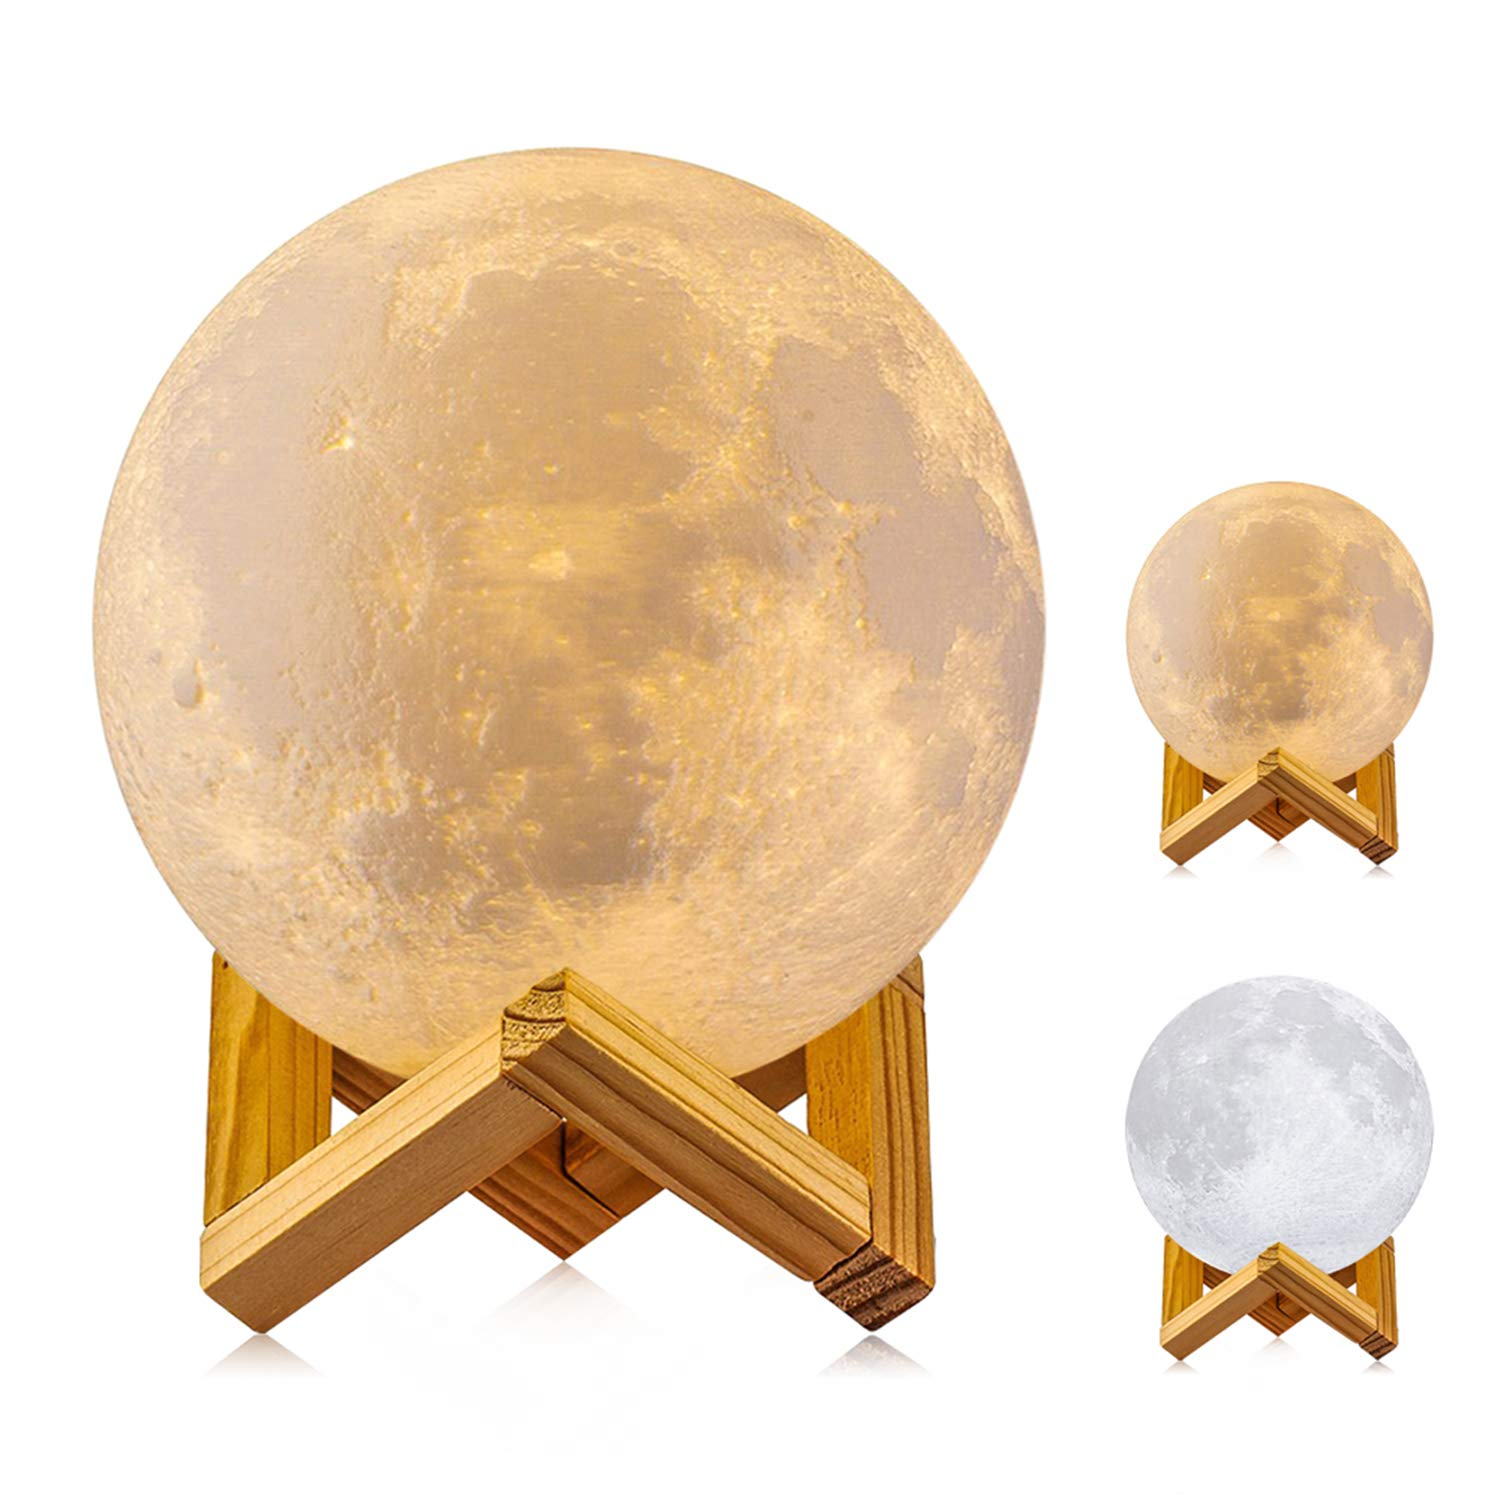 Moon Lamp, 3D Printing LED Night Light Lunar Moon Light with Stand and Warm & Cool Two White Colors and Touch Control Brightness & USB Rechargeable for Baby Kids Lover Gifts(Diameter 4.7 inch)